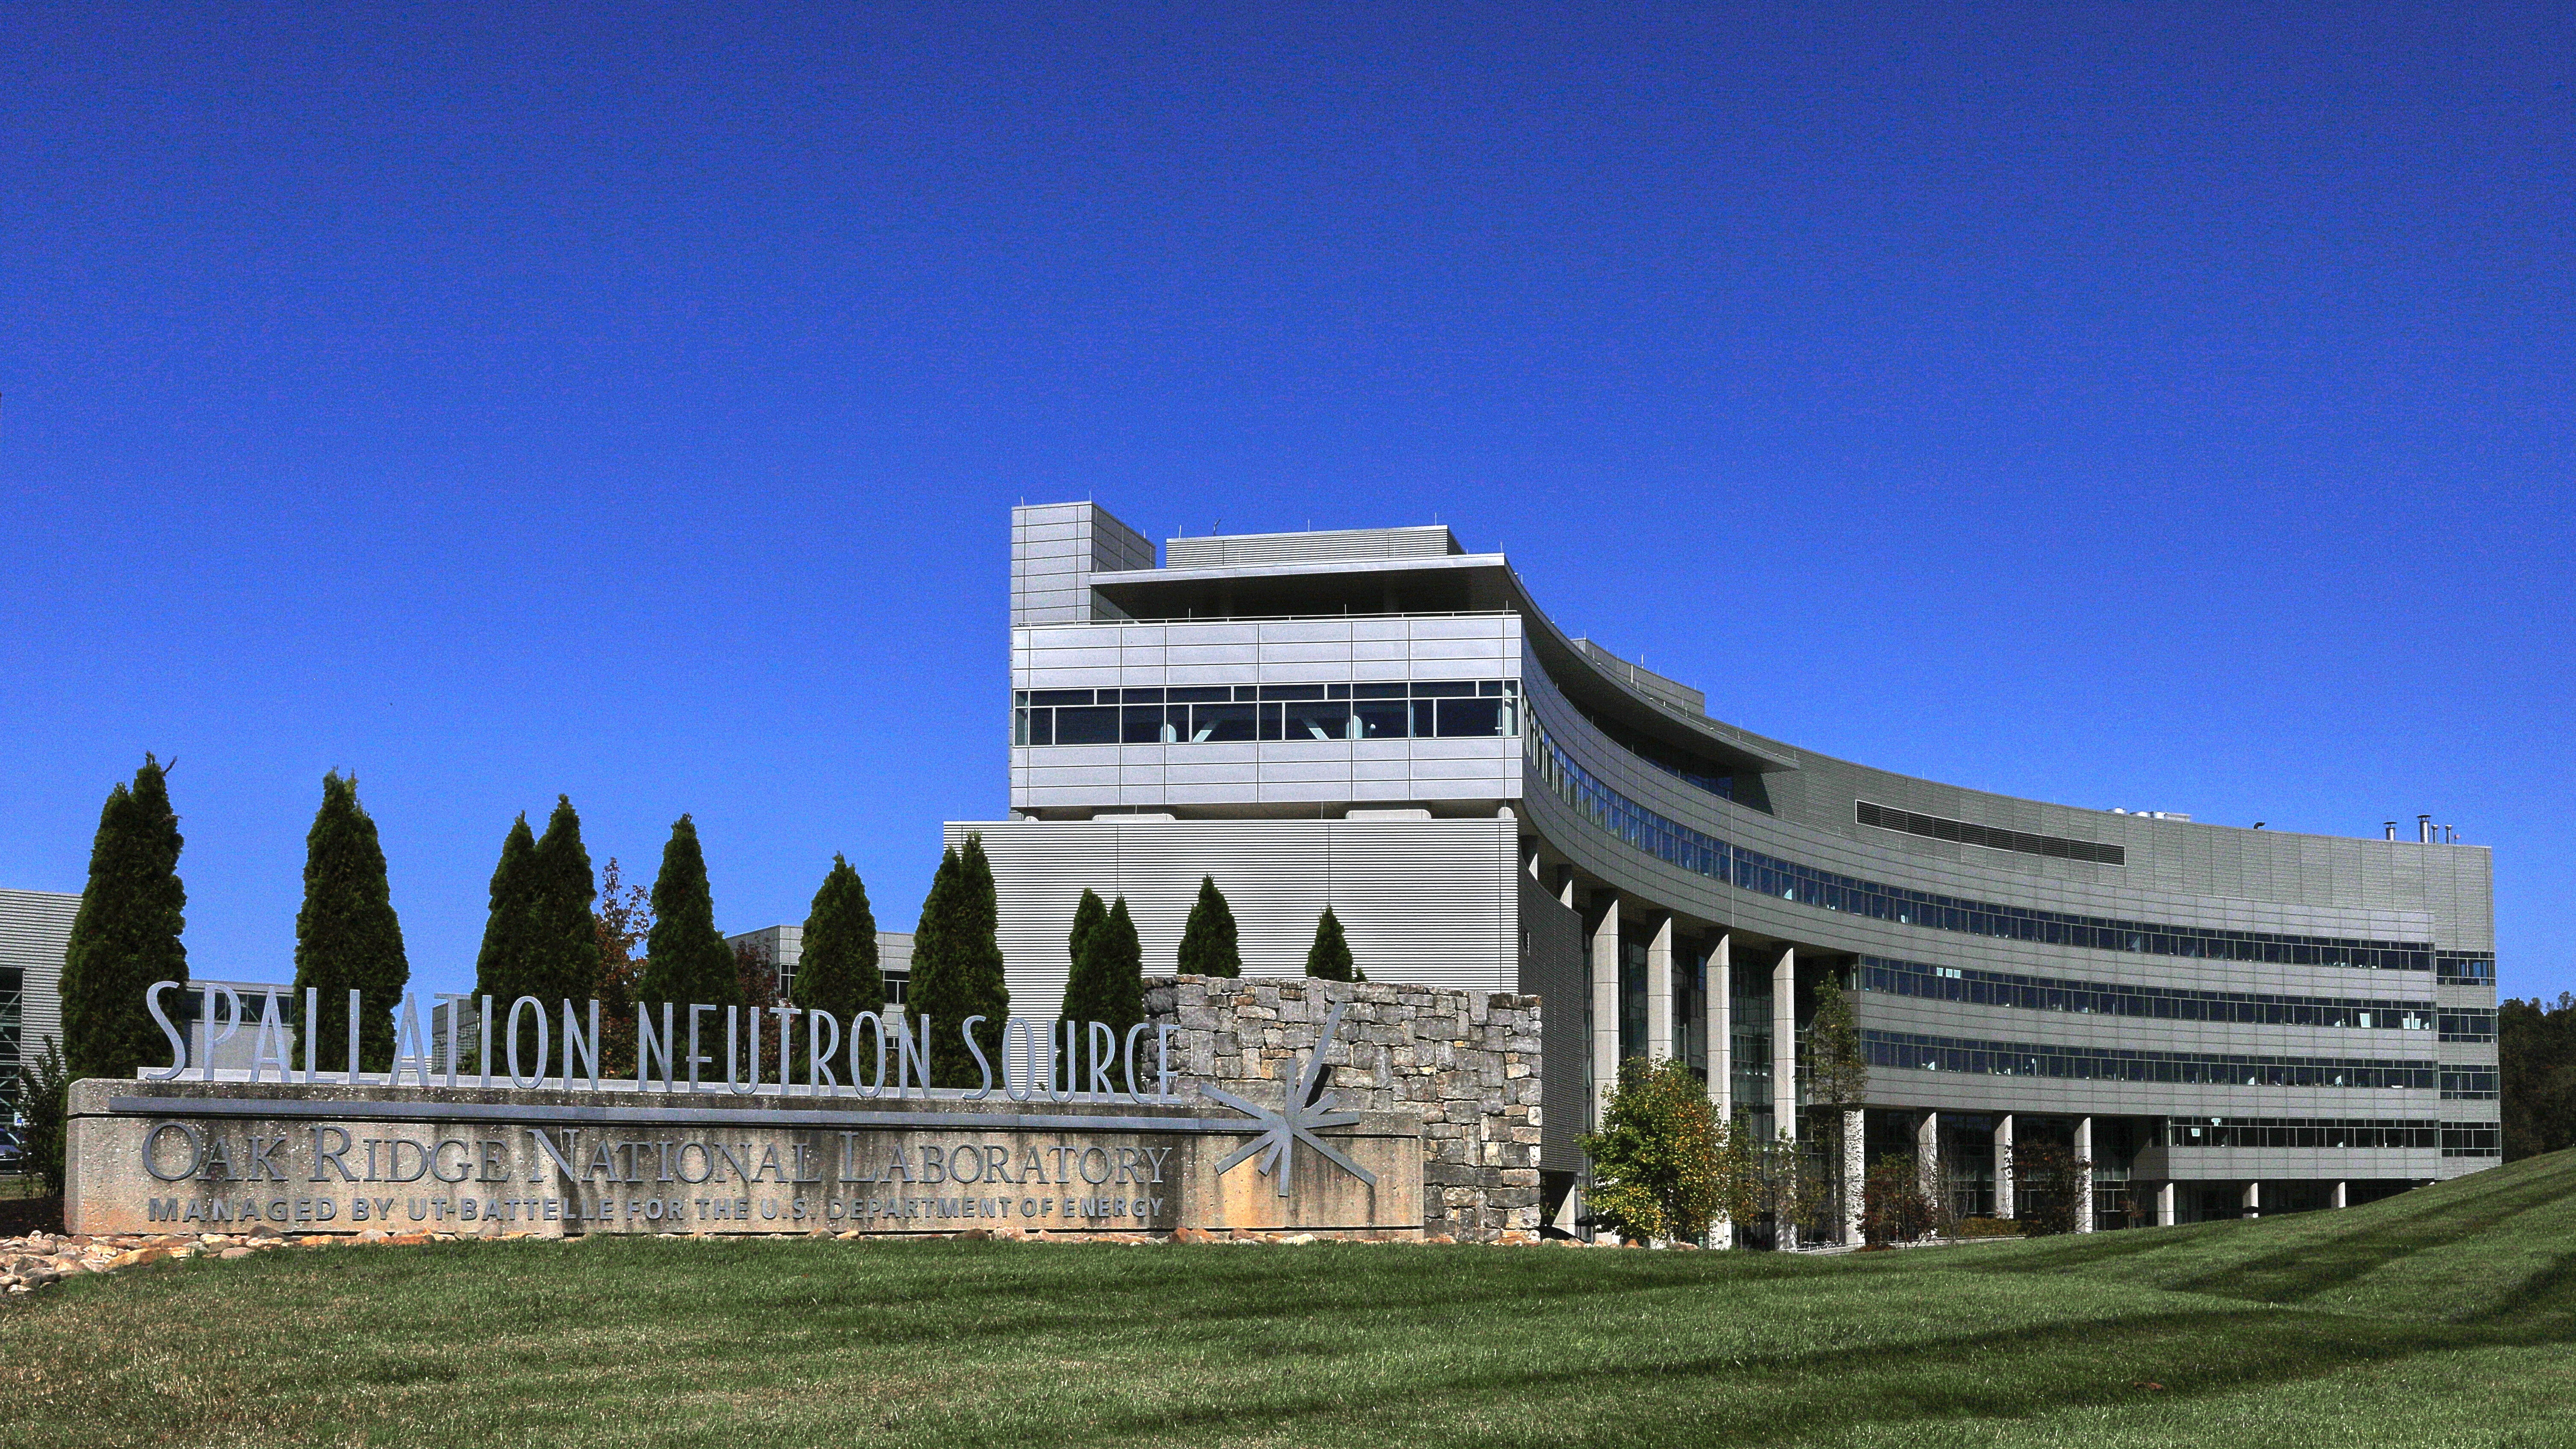 The Spallation Neutron Source at Oak Ridge National Laboratory has reached its operational power design level by running a neutron production cycle at 1.4 megawatts.